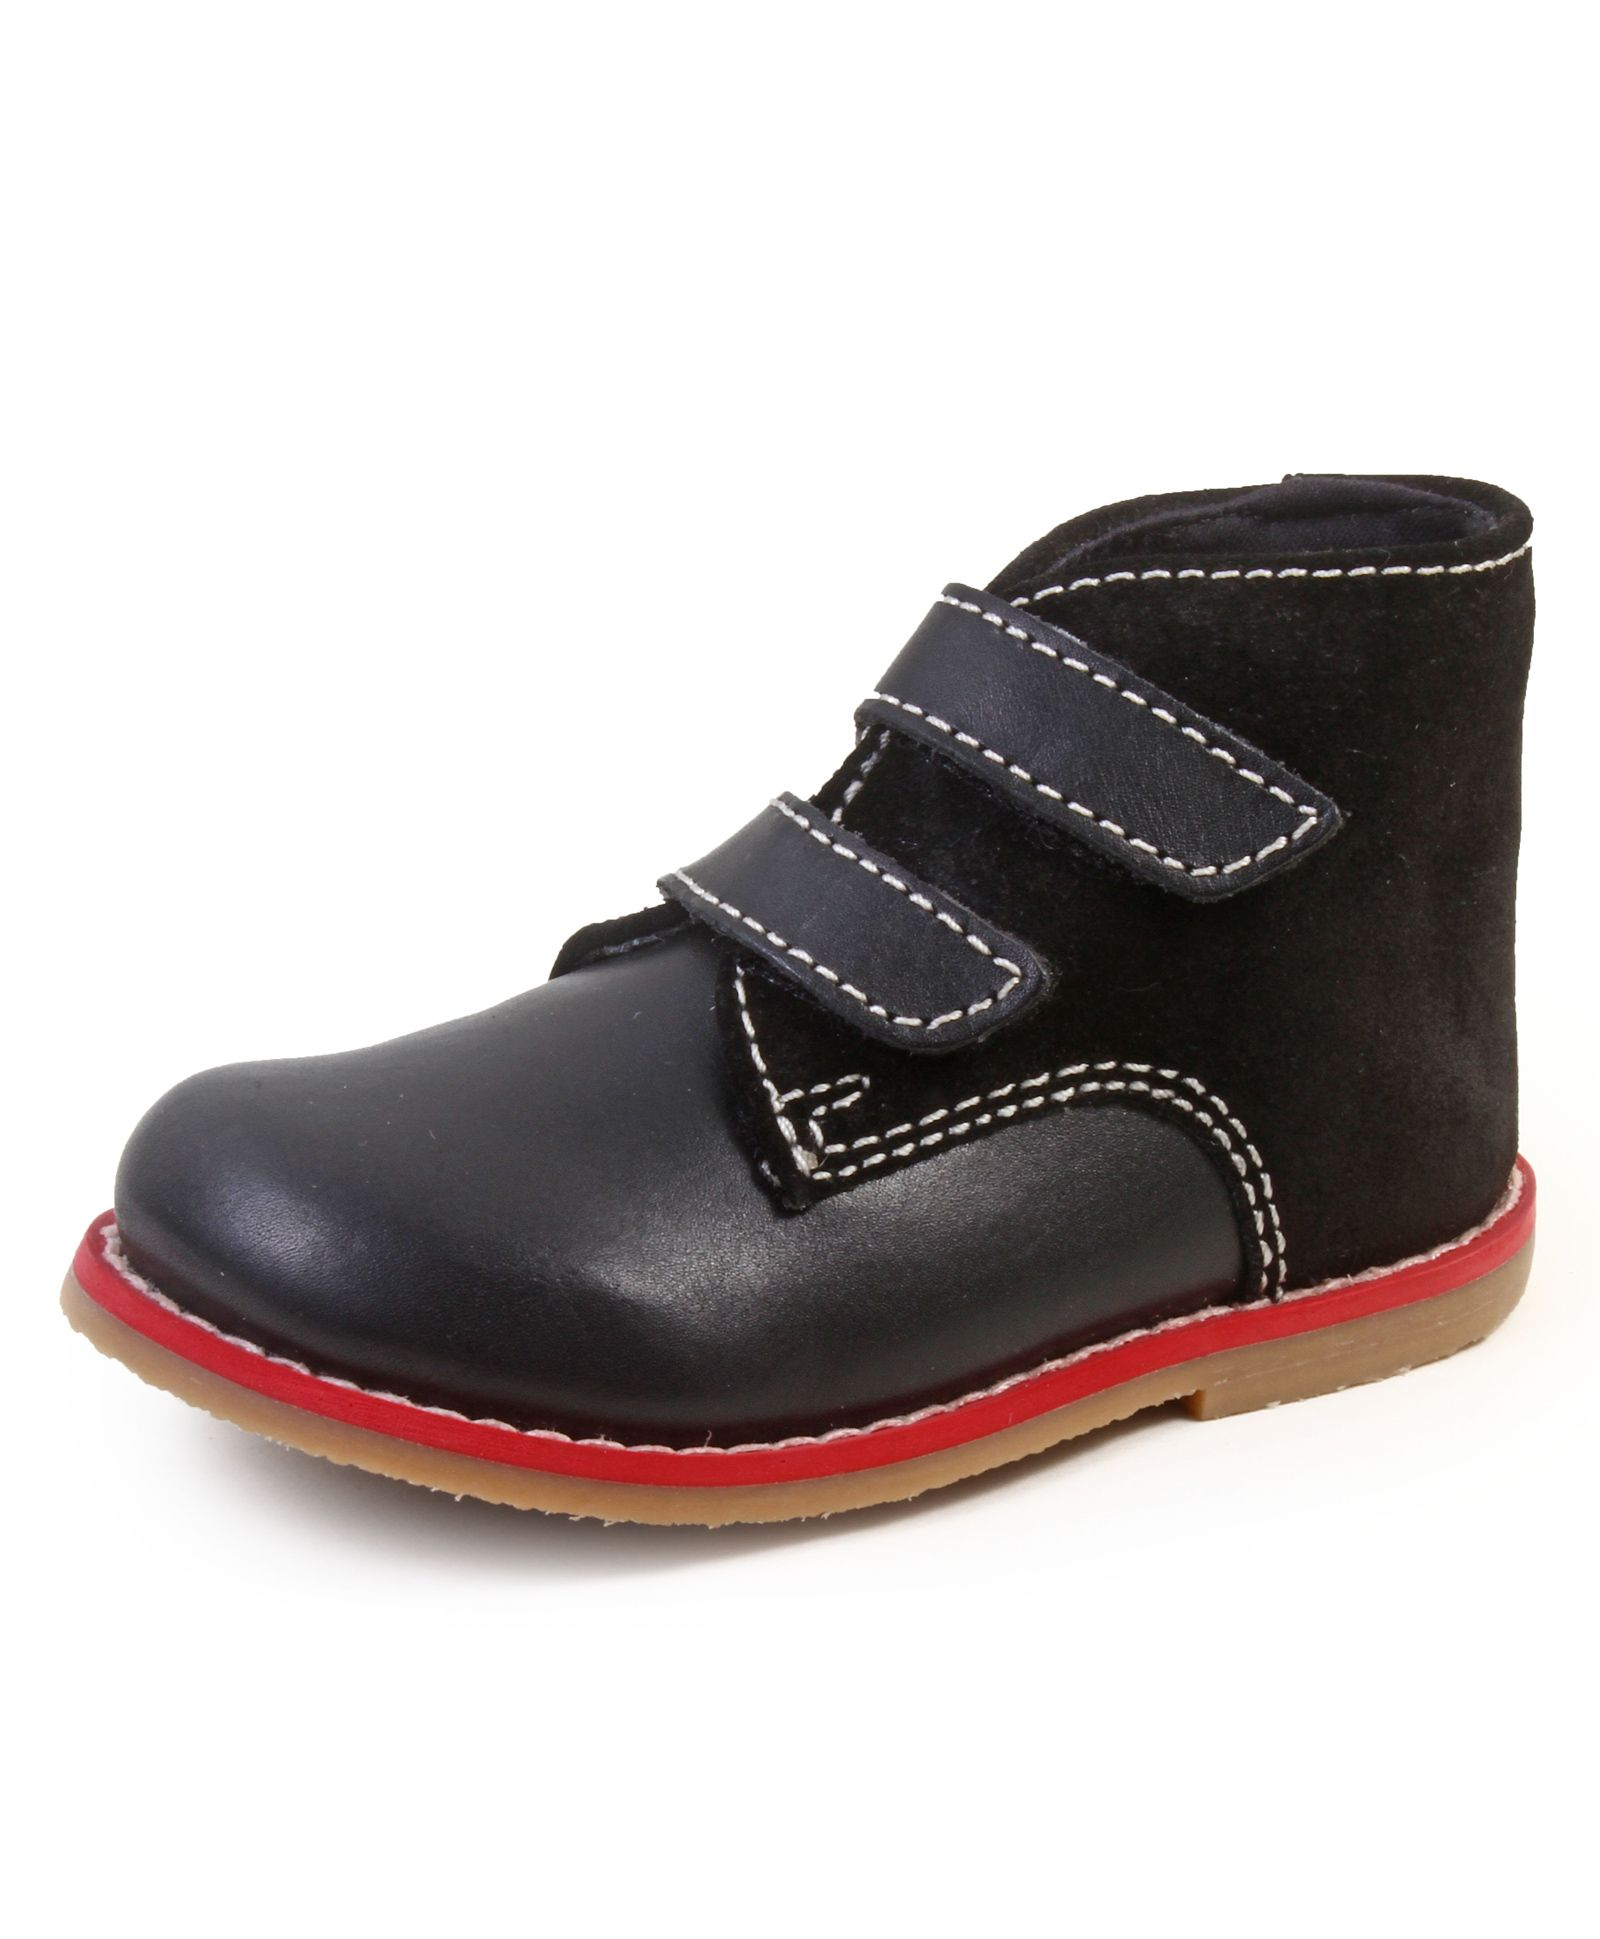 Upto 25% Off On Kid's Footwear By Firstcry | Beanz Party Wear Shoes - Black @ Rs.1,874.25